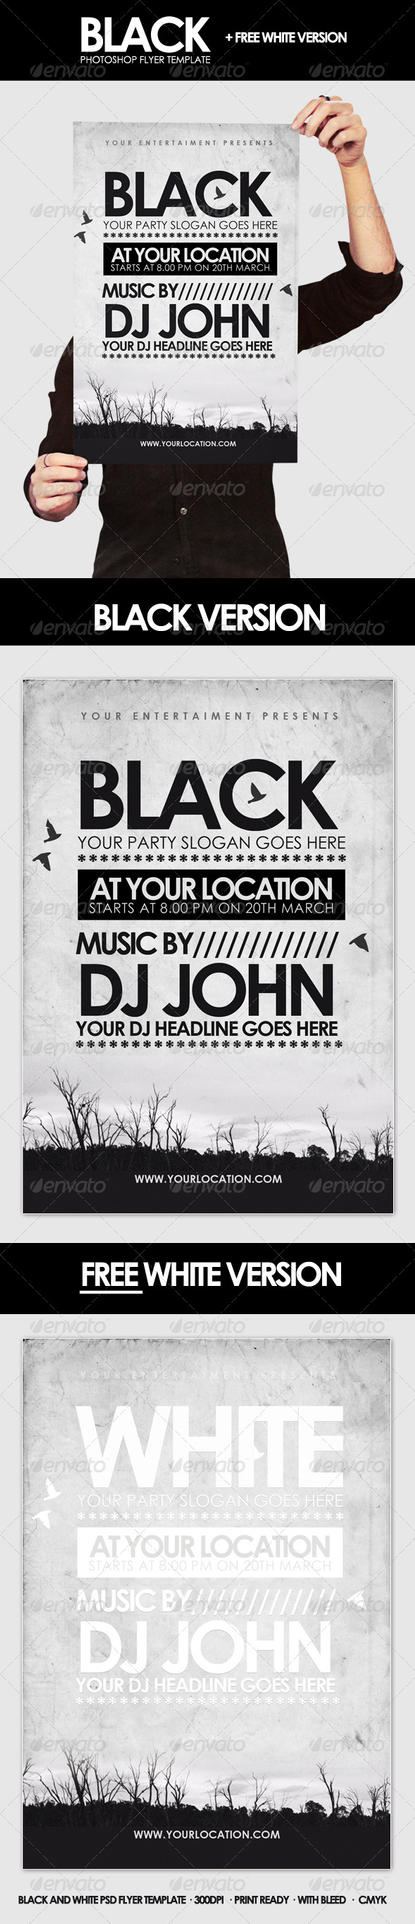 Black - Flyer Template by DOMDESIGN